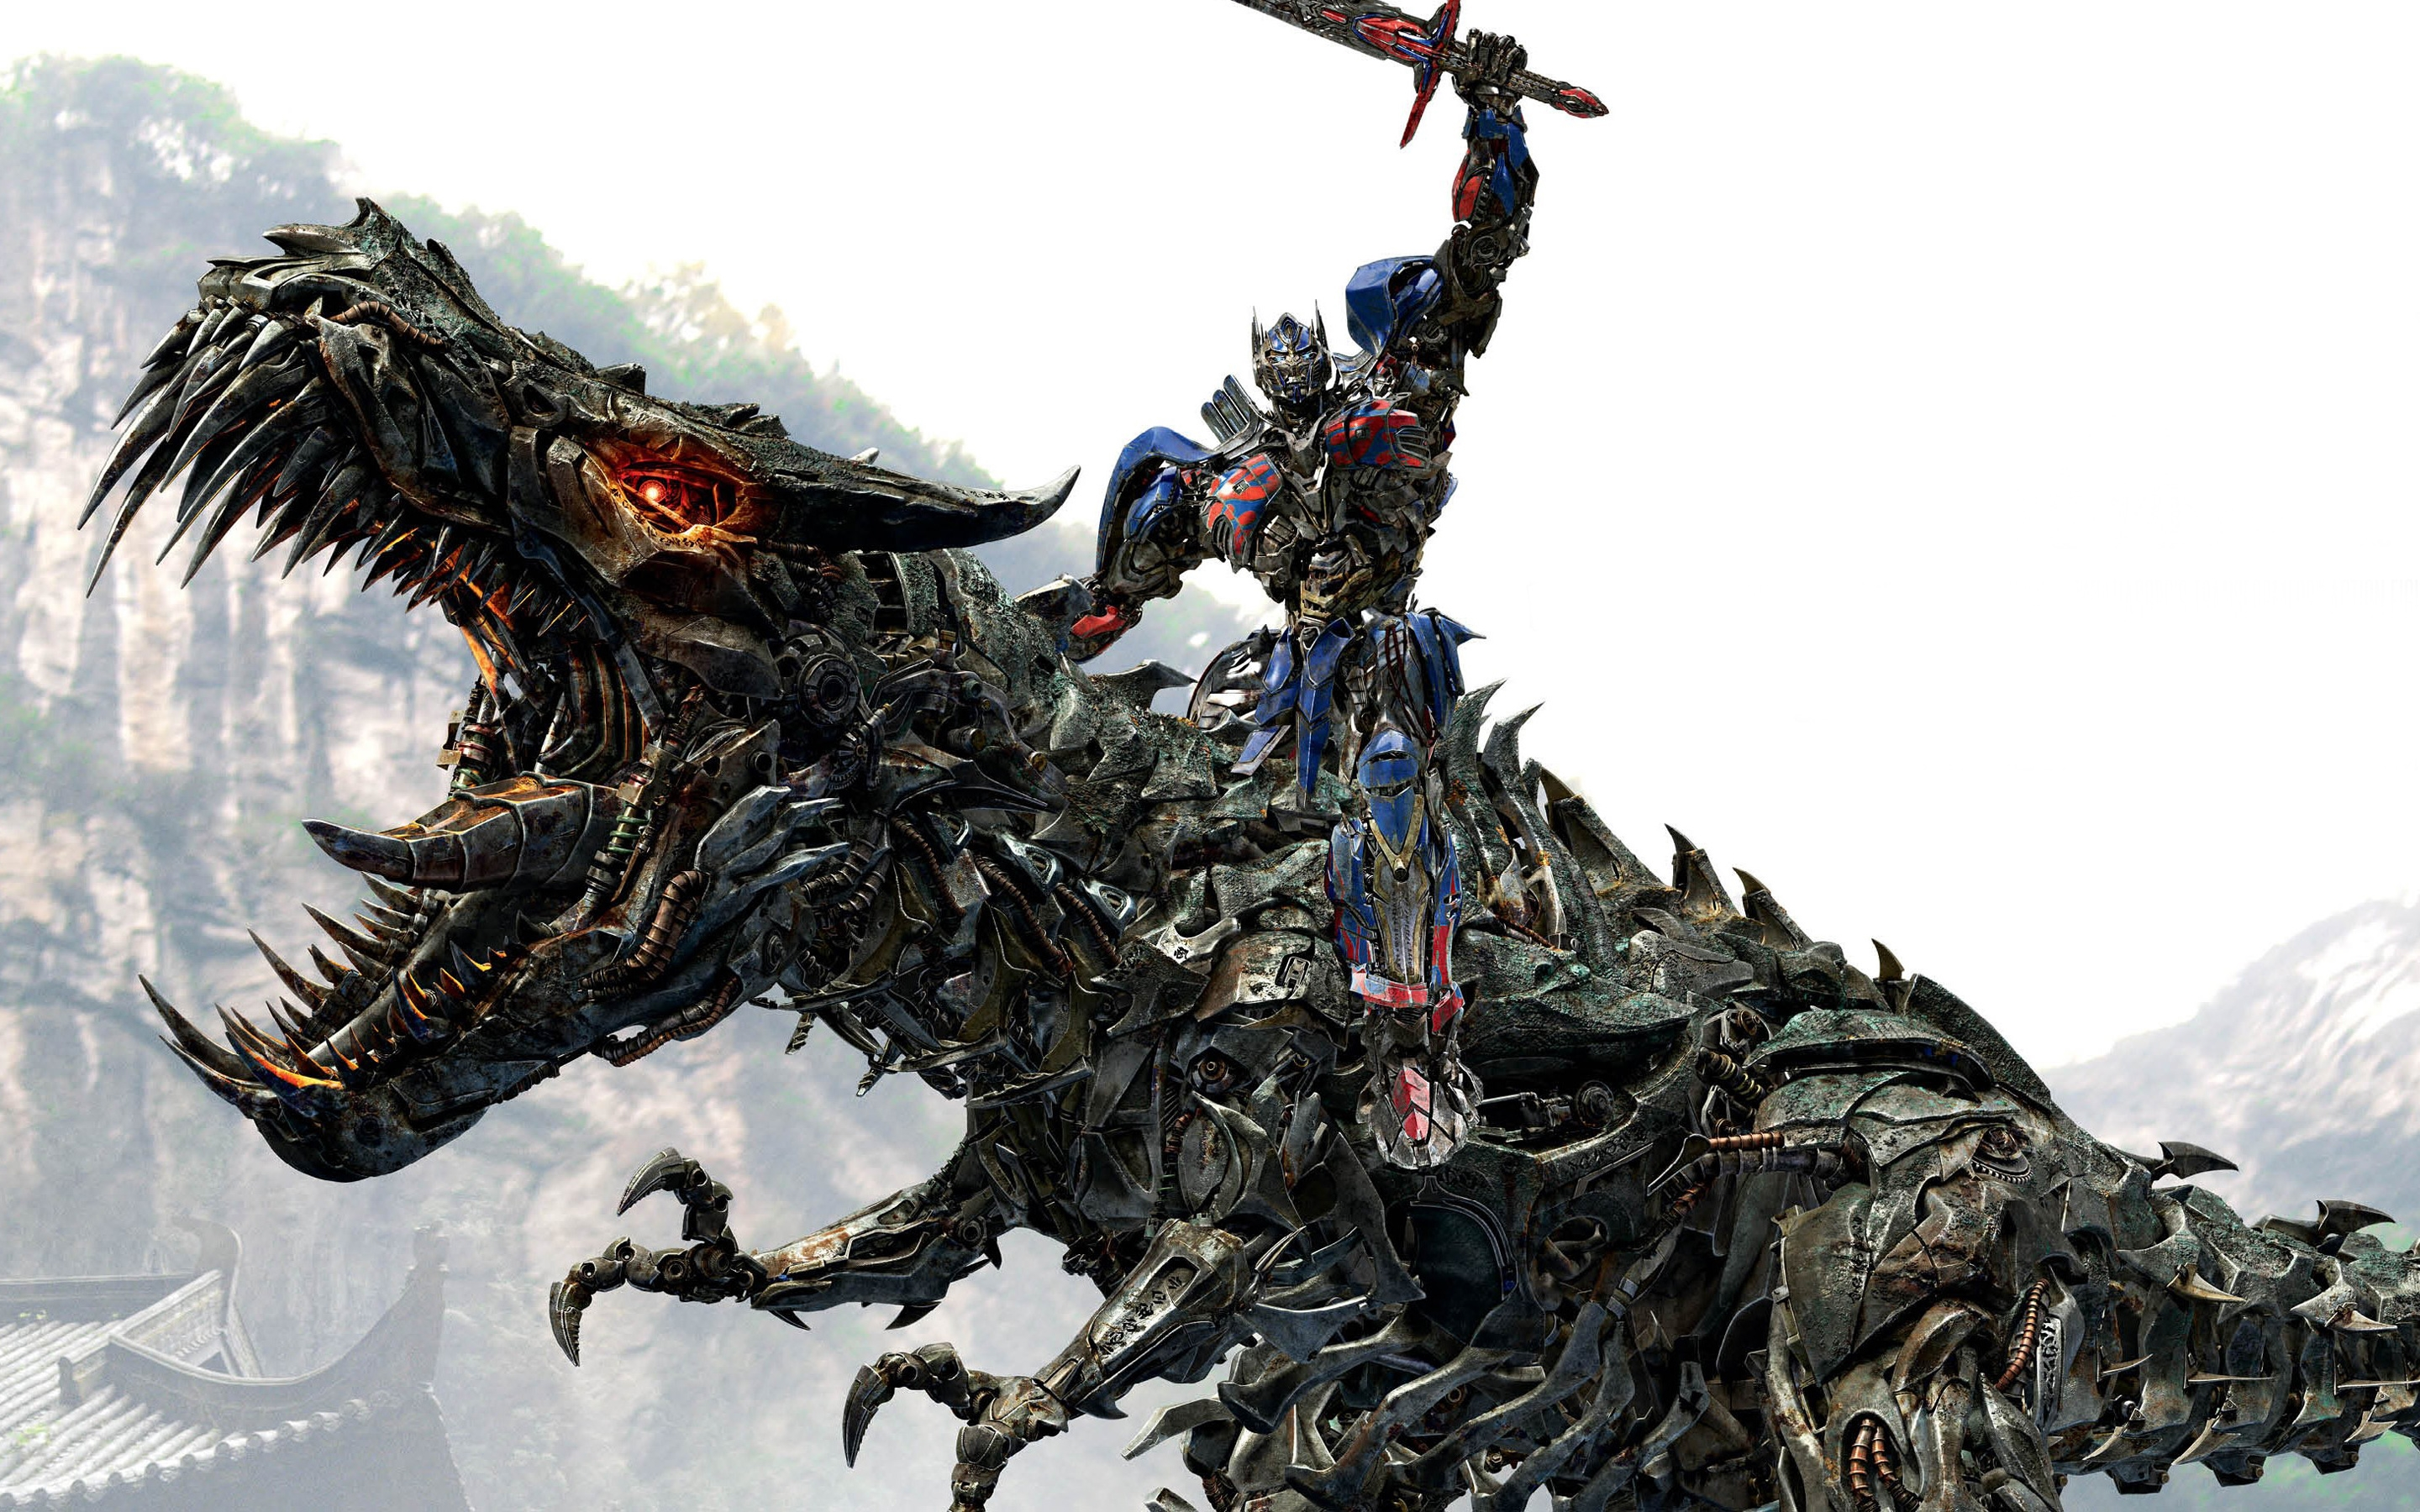 optimus prime riding grimlock dinobots wide